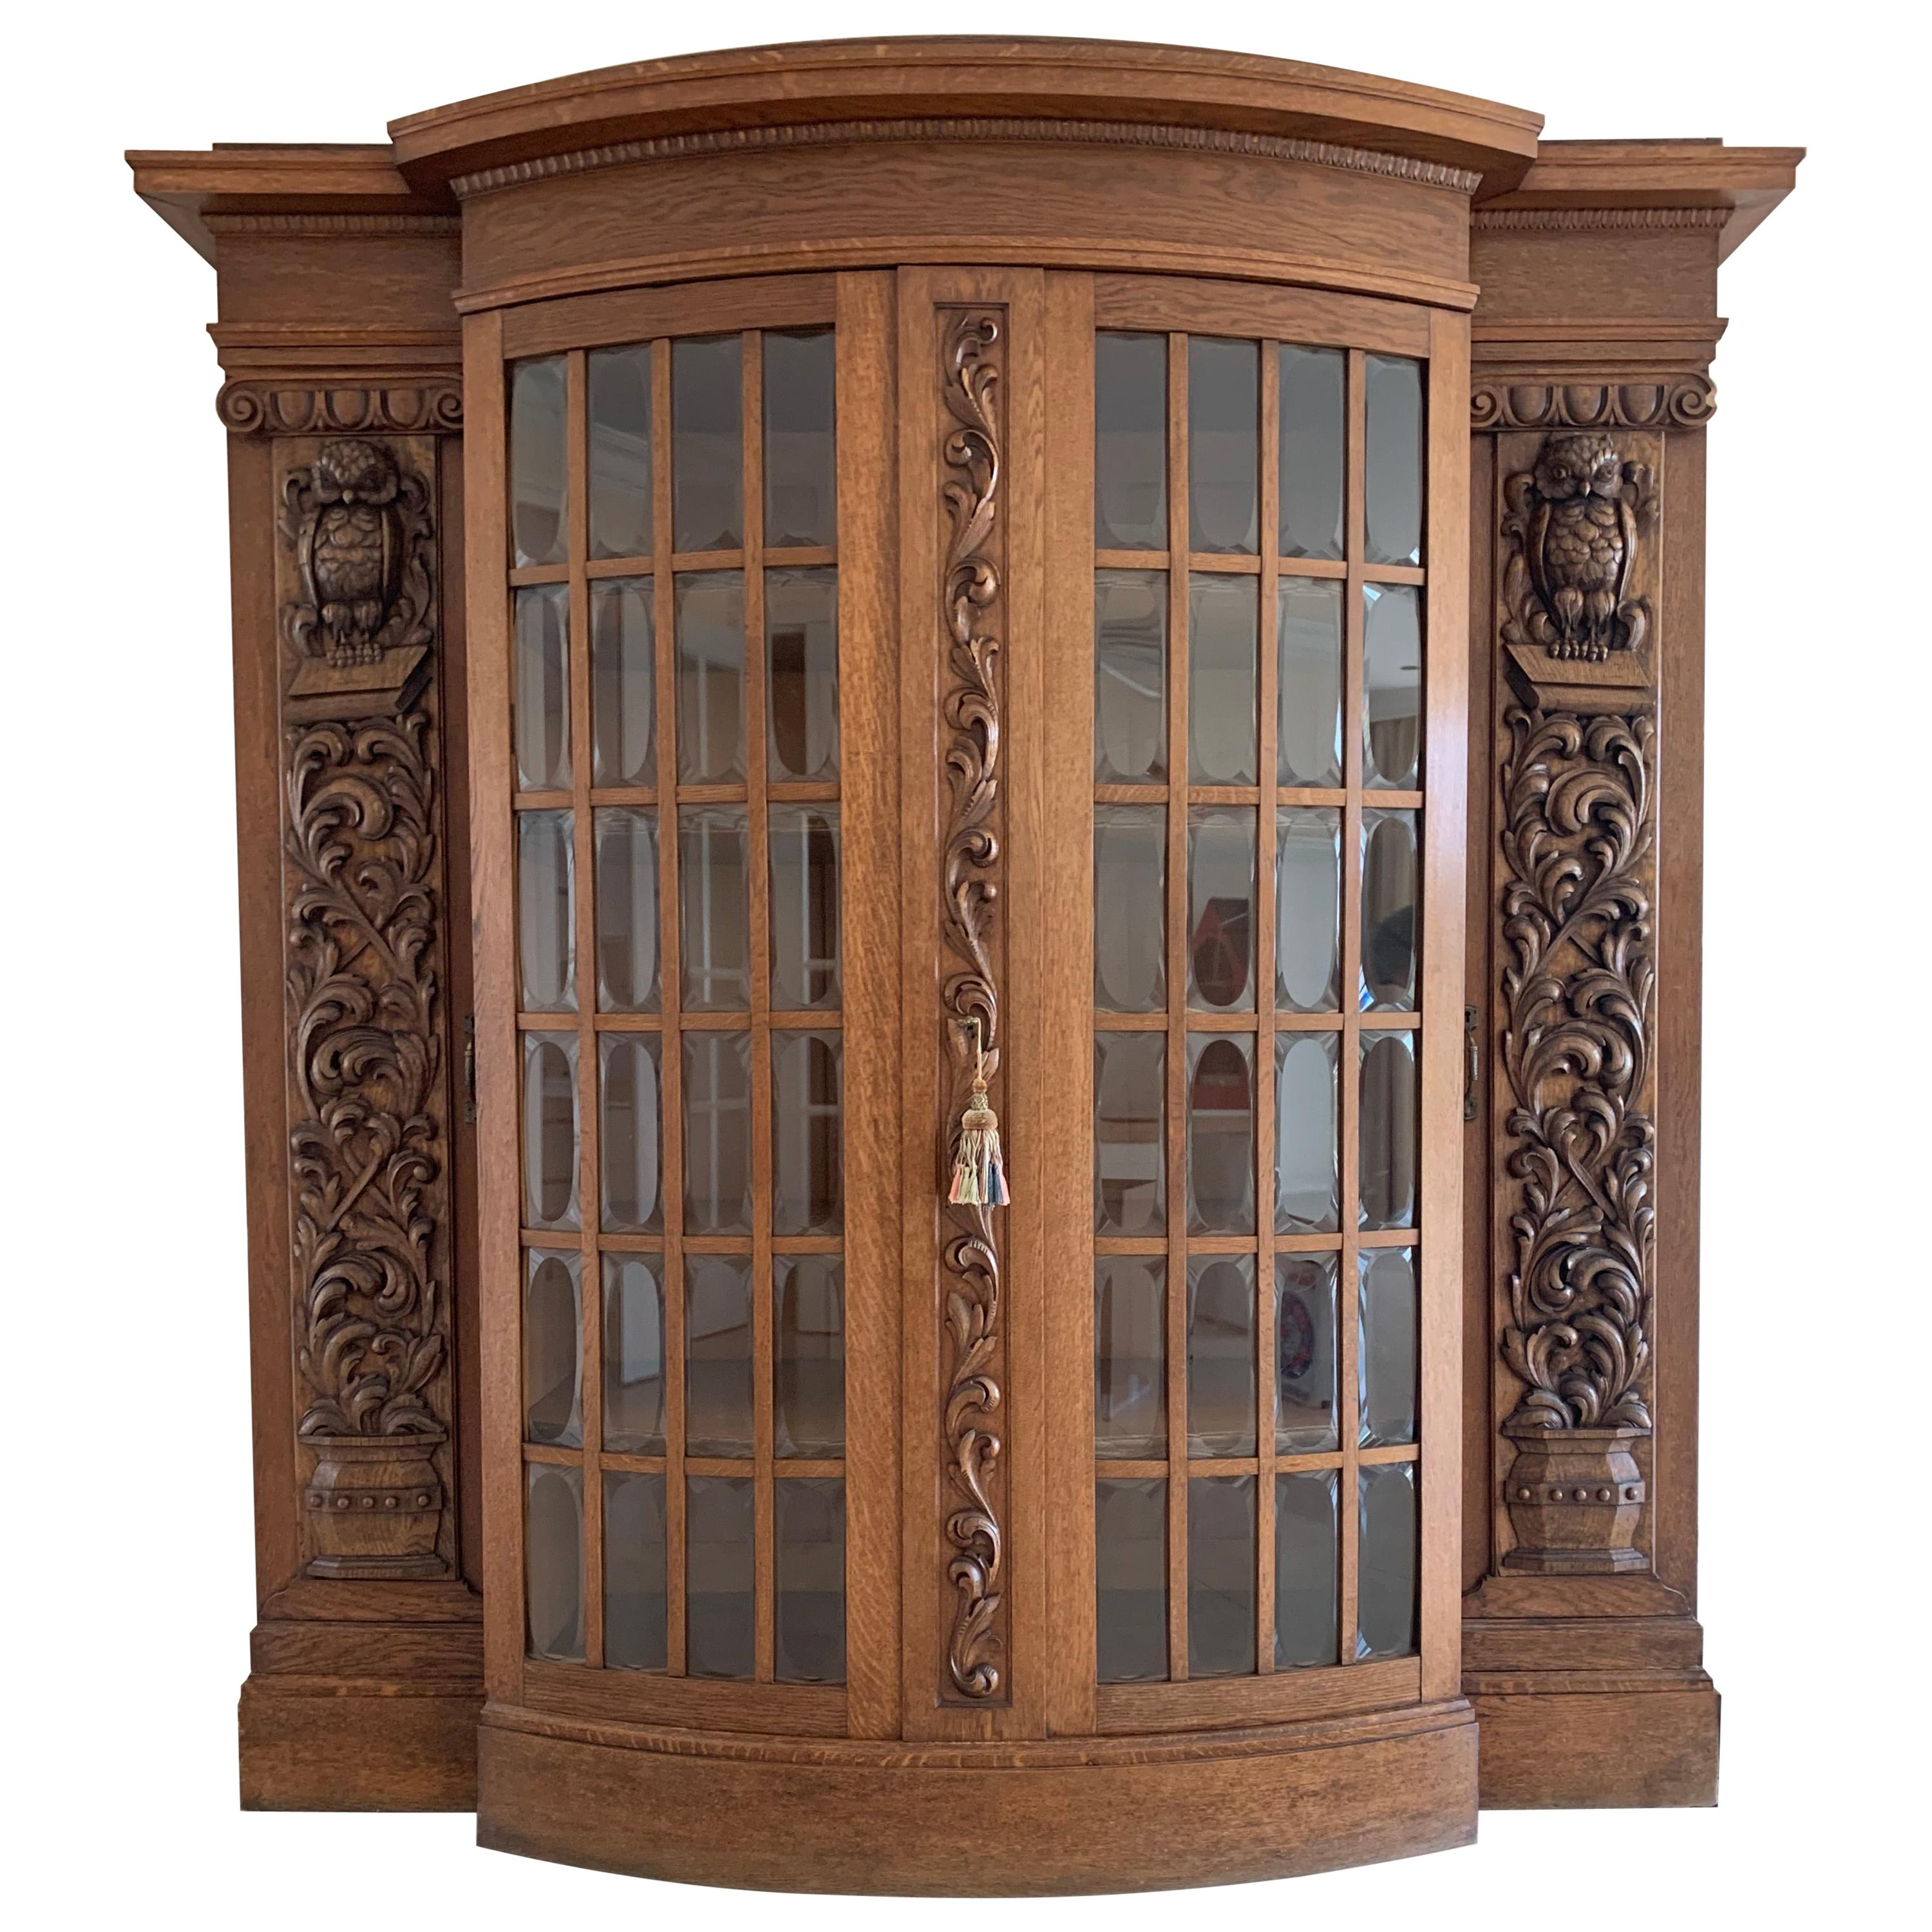 Antique Large & Meaningful Oak Bookcase / Vitrine Cabinet with Owl Sculptures